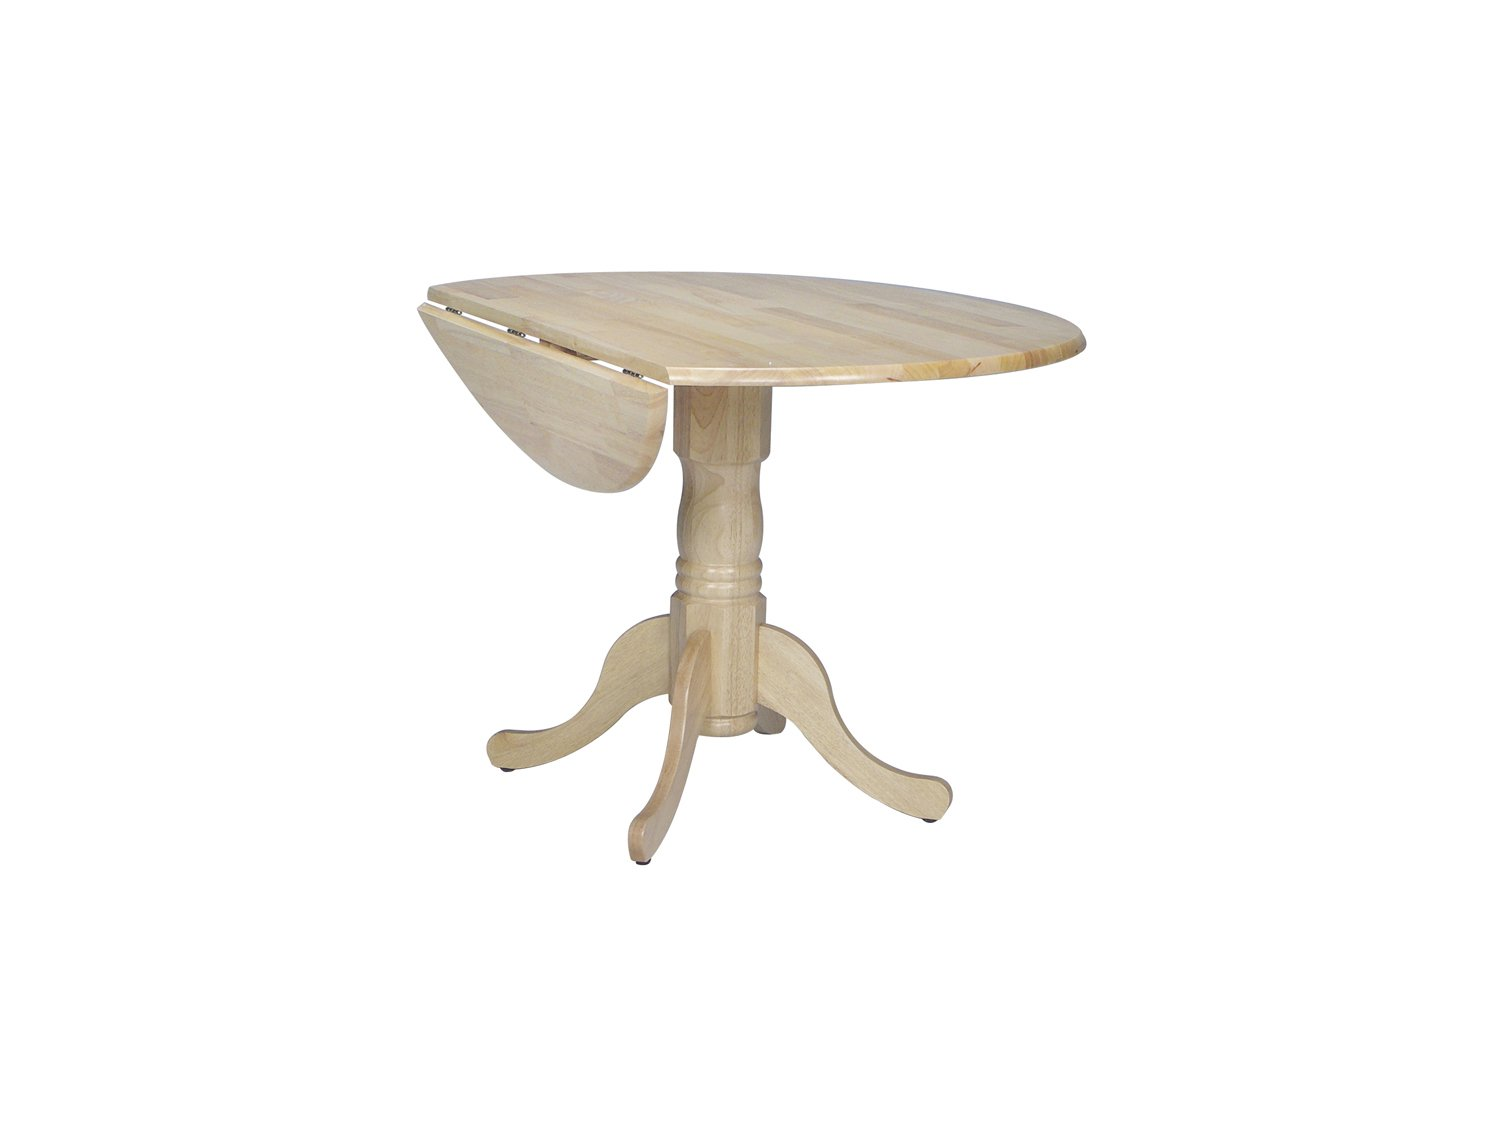 International Concepts 42-Inch Round Dual Drop Leaf Ped Table, Natural